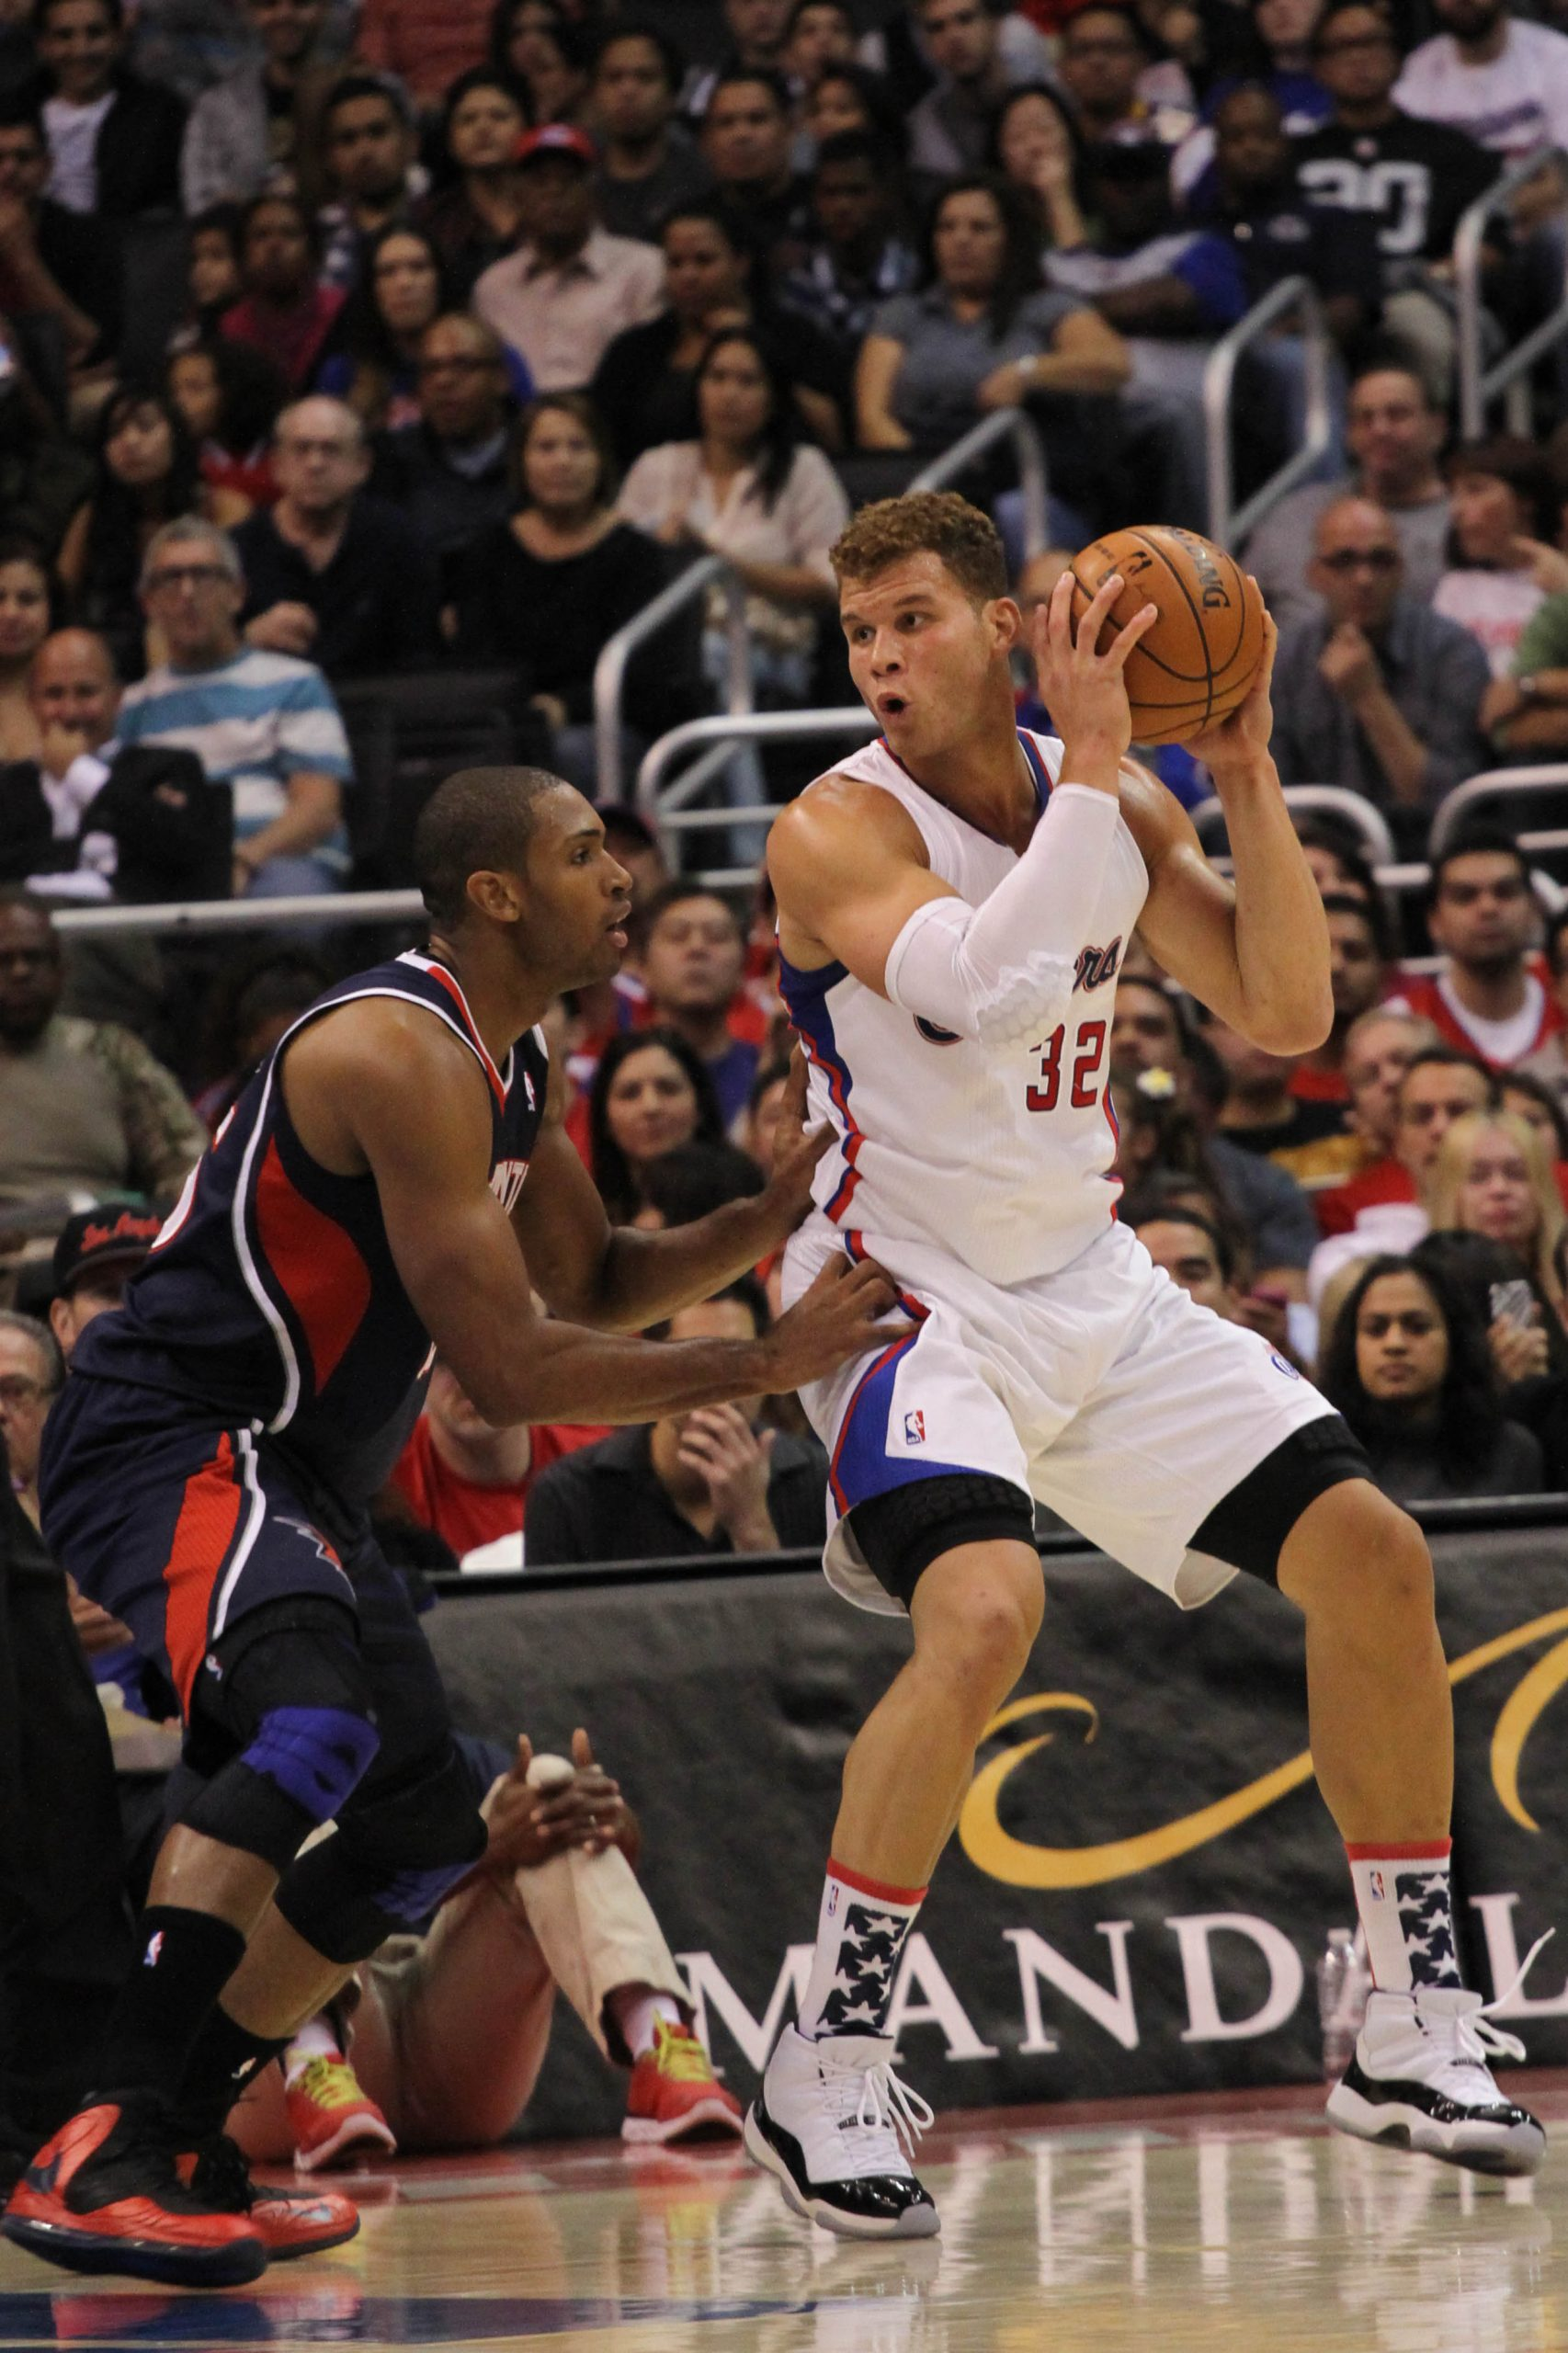 LOS ANGELES-The Los Angeles Clippers continue to roll, securing a methodical 93-77 win against the New Orleans Hornets at Staples...